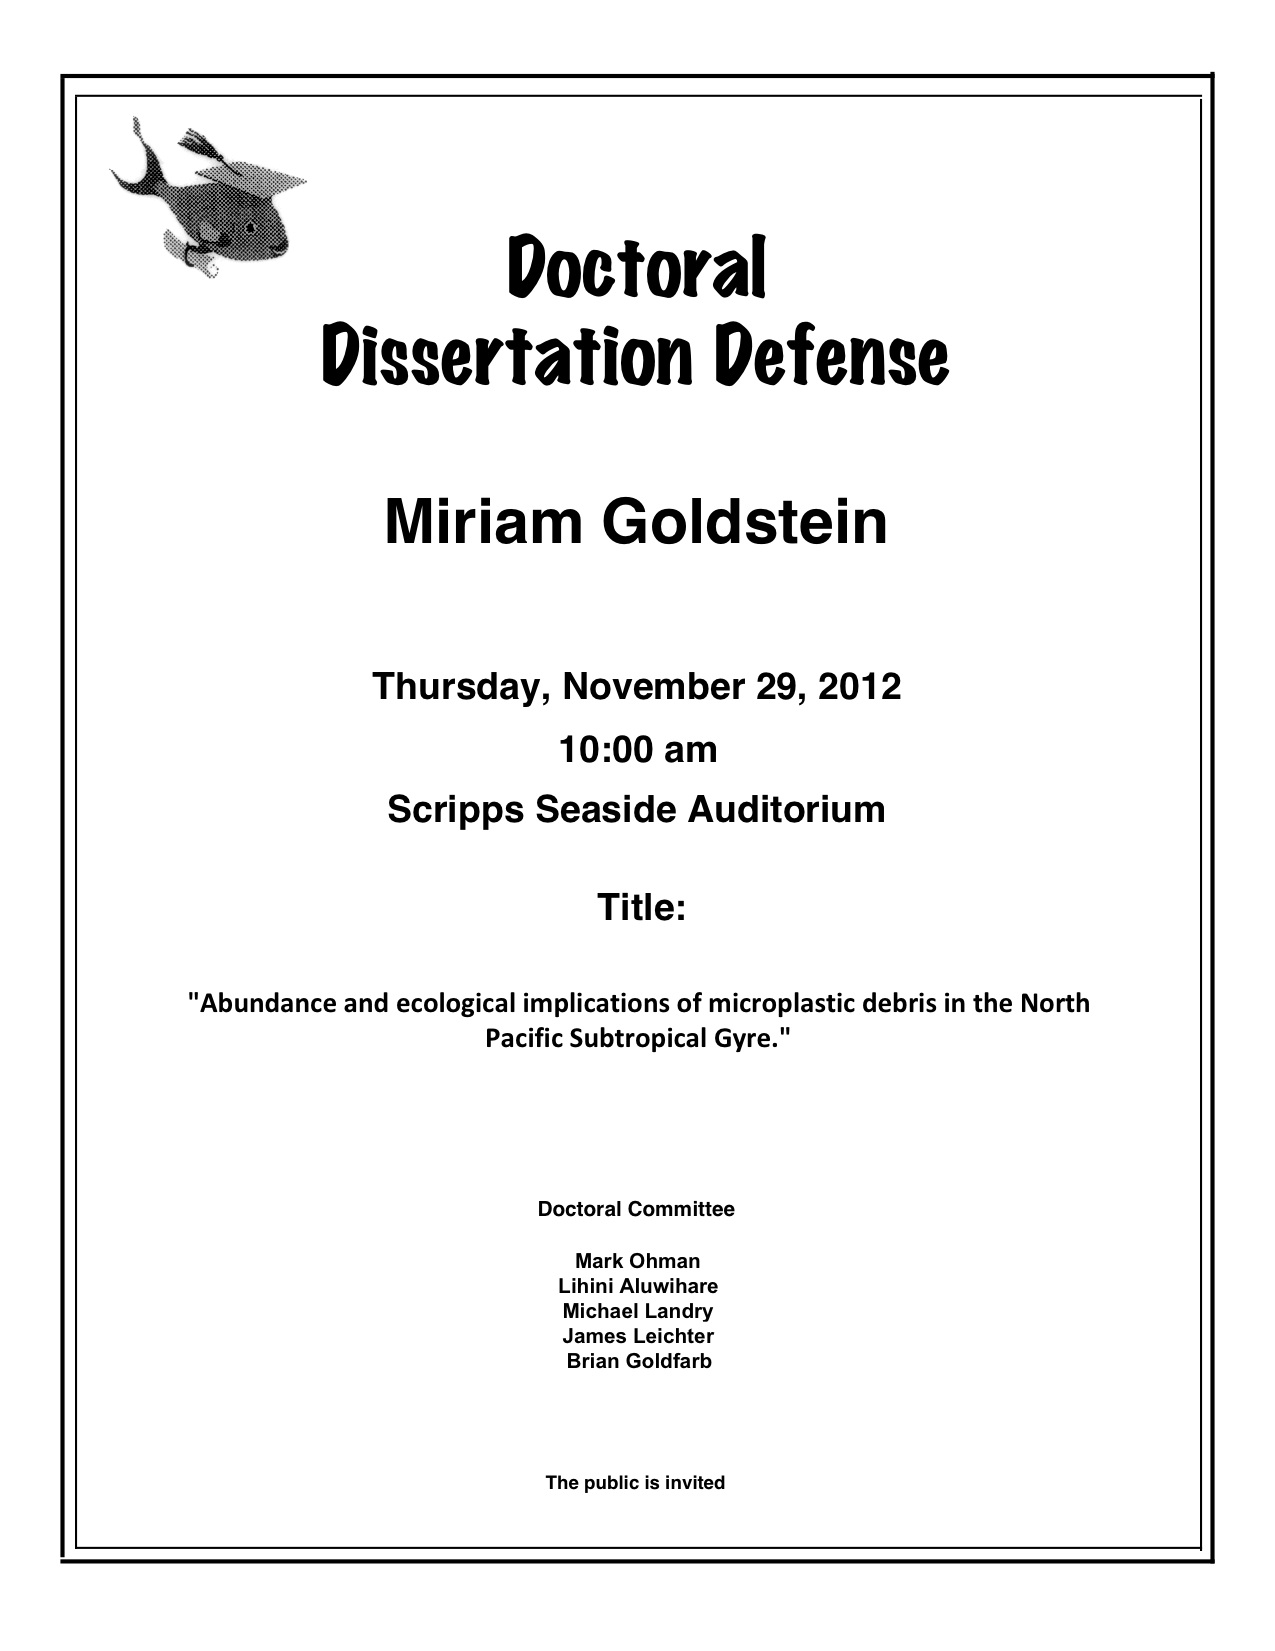 thesis defense committee invitation